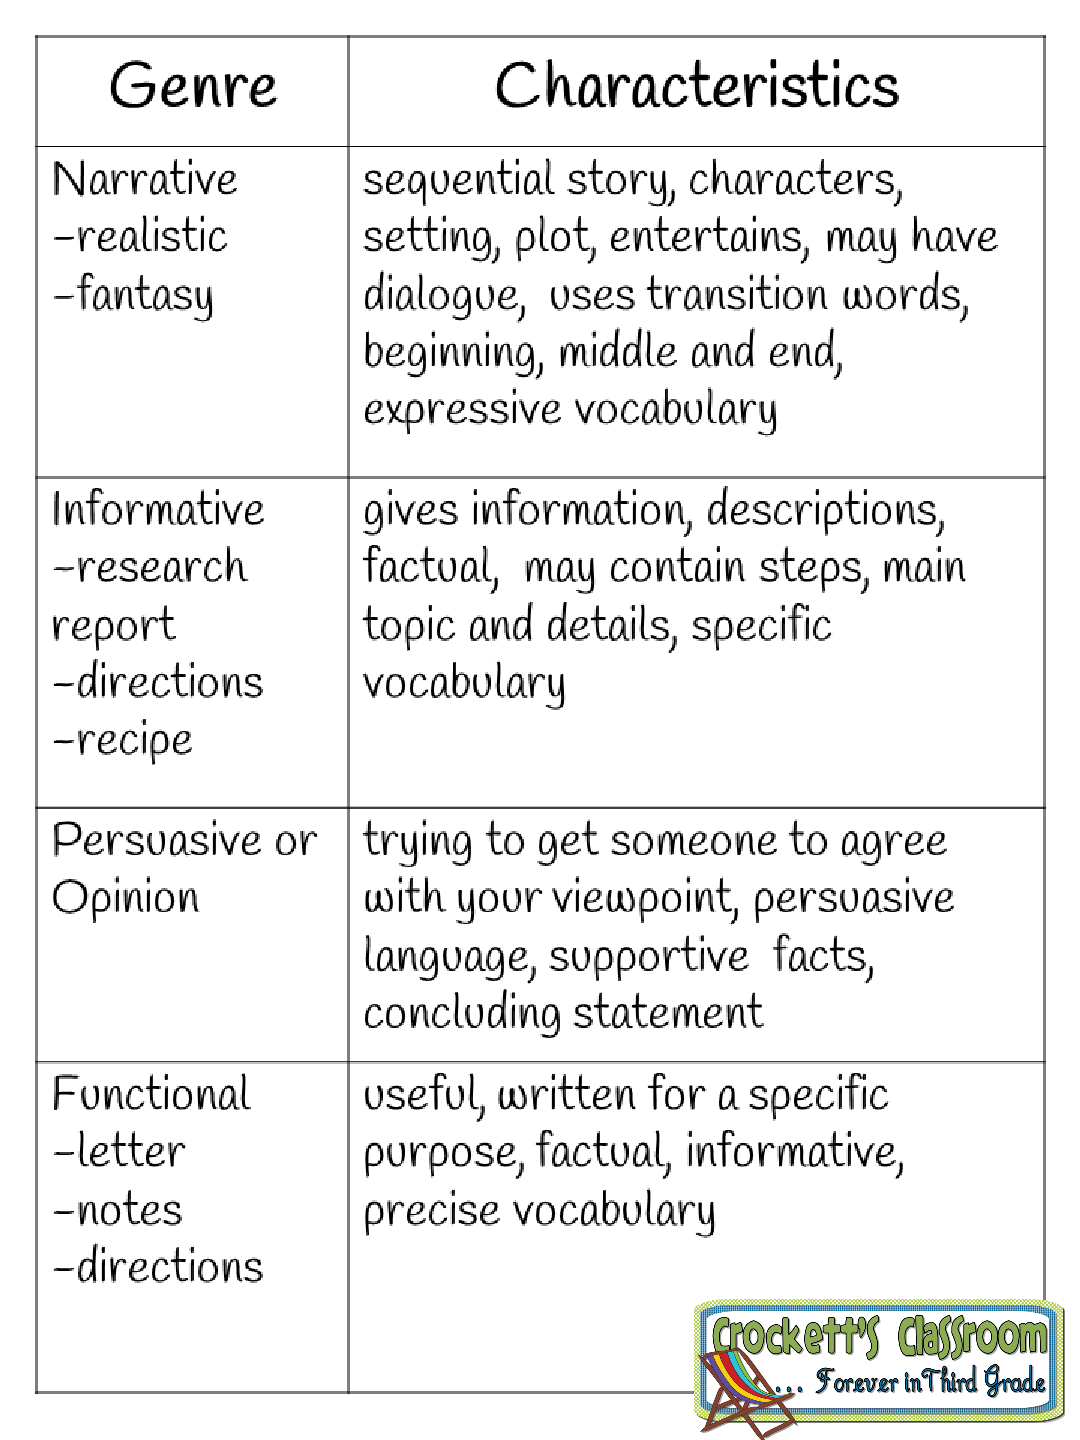 Writing Genre Chart Handy For Students To Keep In Their